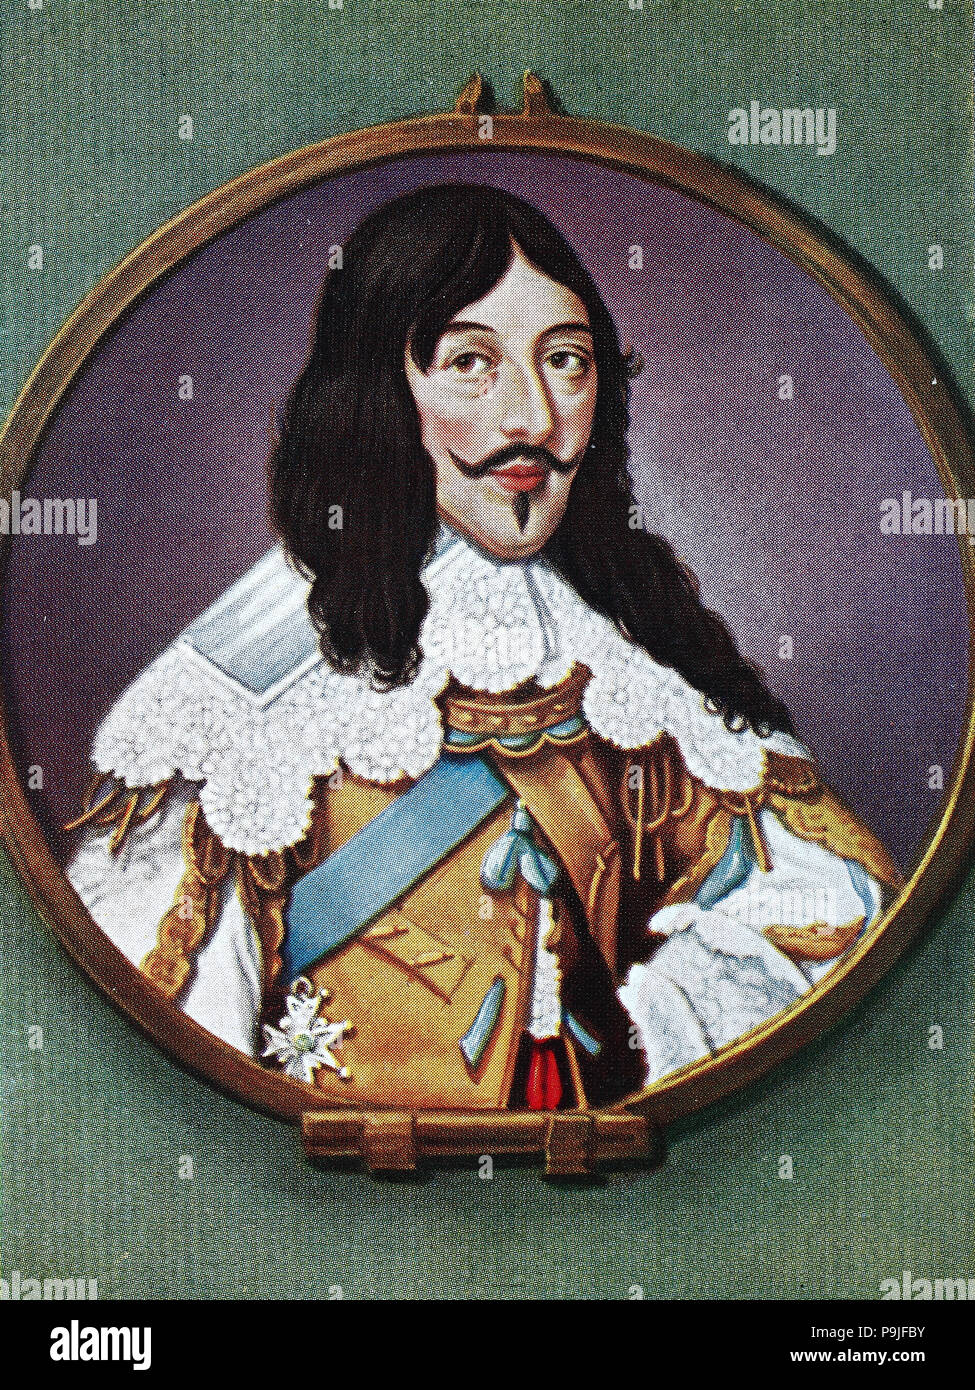 Louis XIII, 27 September 1601 – 14 May 1643, was a monarch of the House of Bourbon who ruled as King of France from 1610 to 1643 and King of Navarre, as Louis II, from 1610 to 1620, when the crown of Navarre was merged with the French crown, digital improved reproduction of an original print from the year 1900 - Stock Image